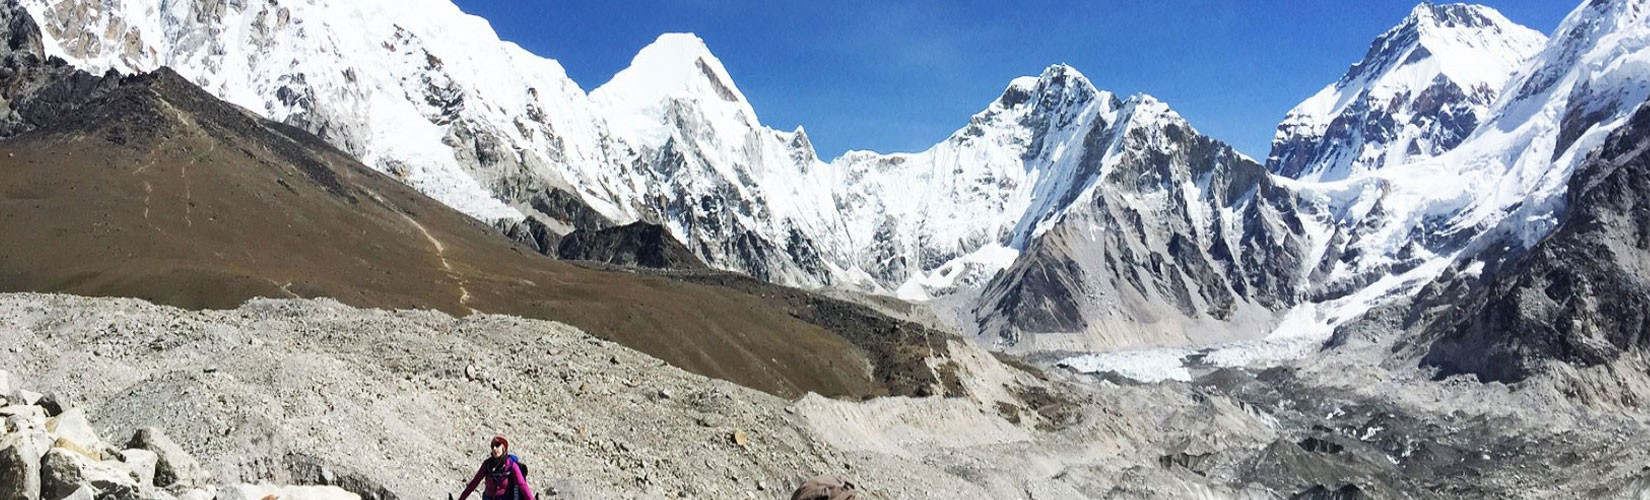 Mount Everest Region